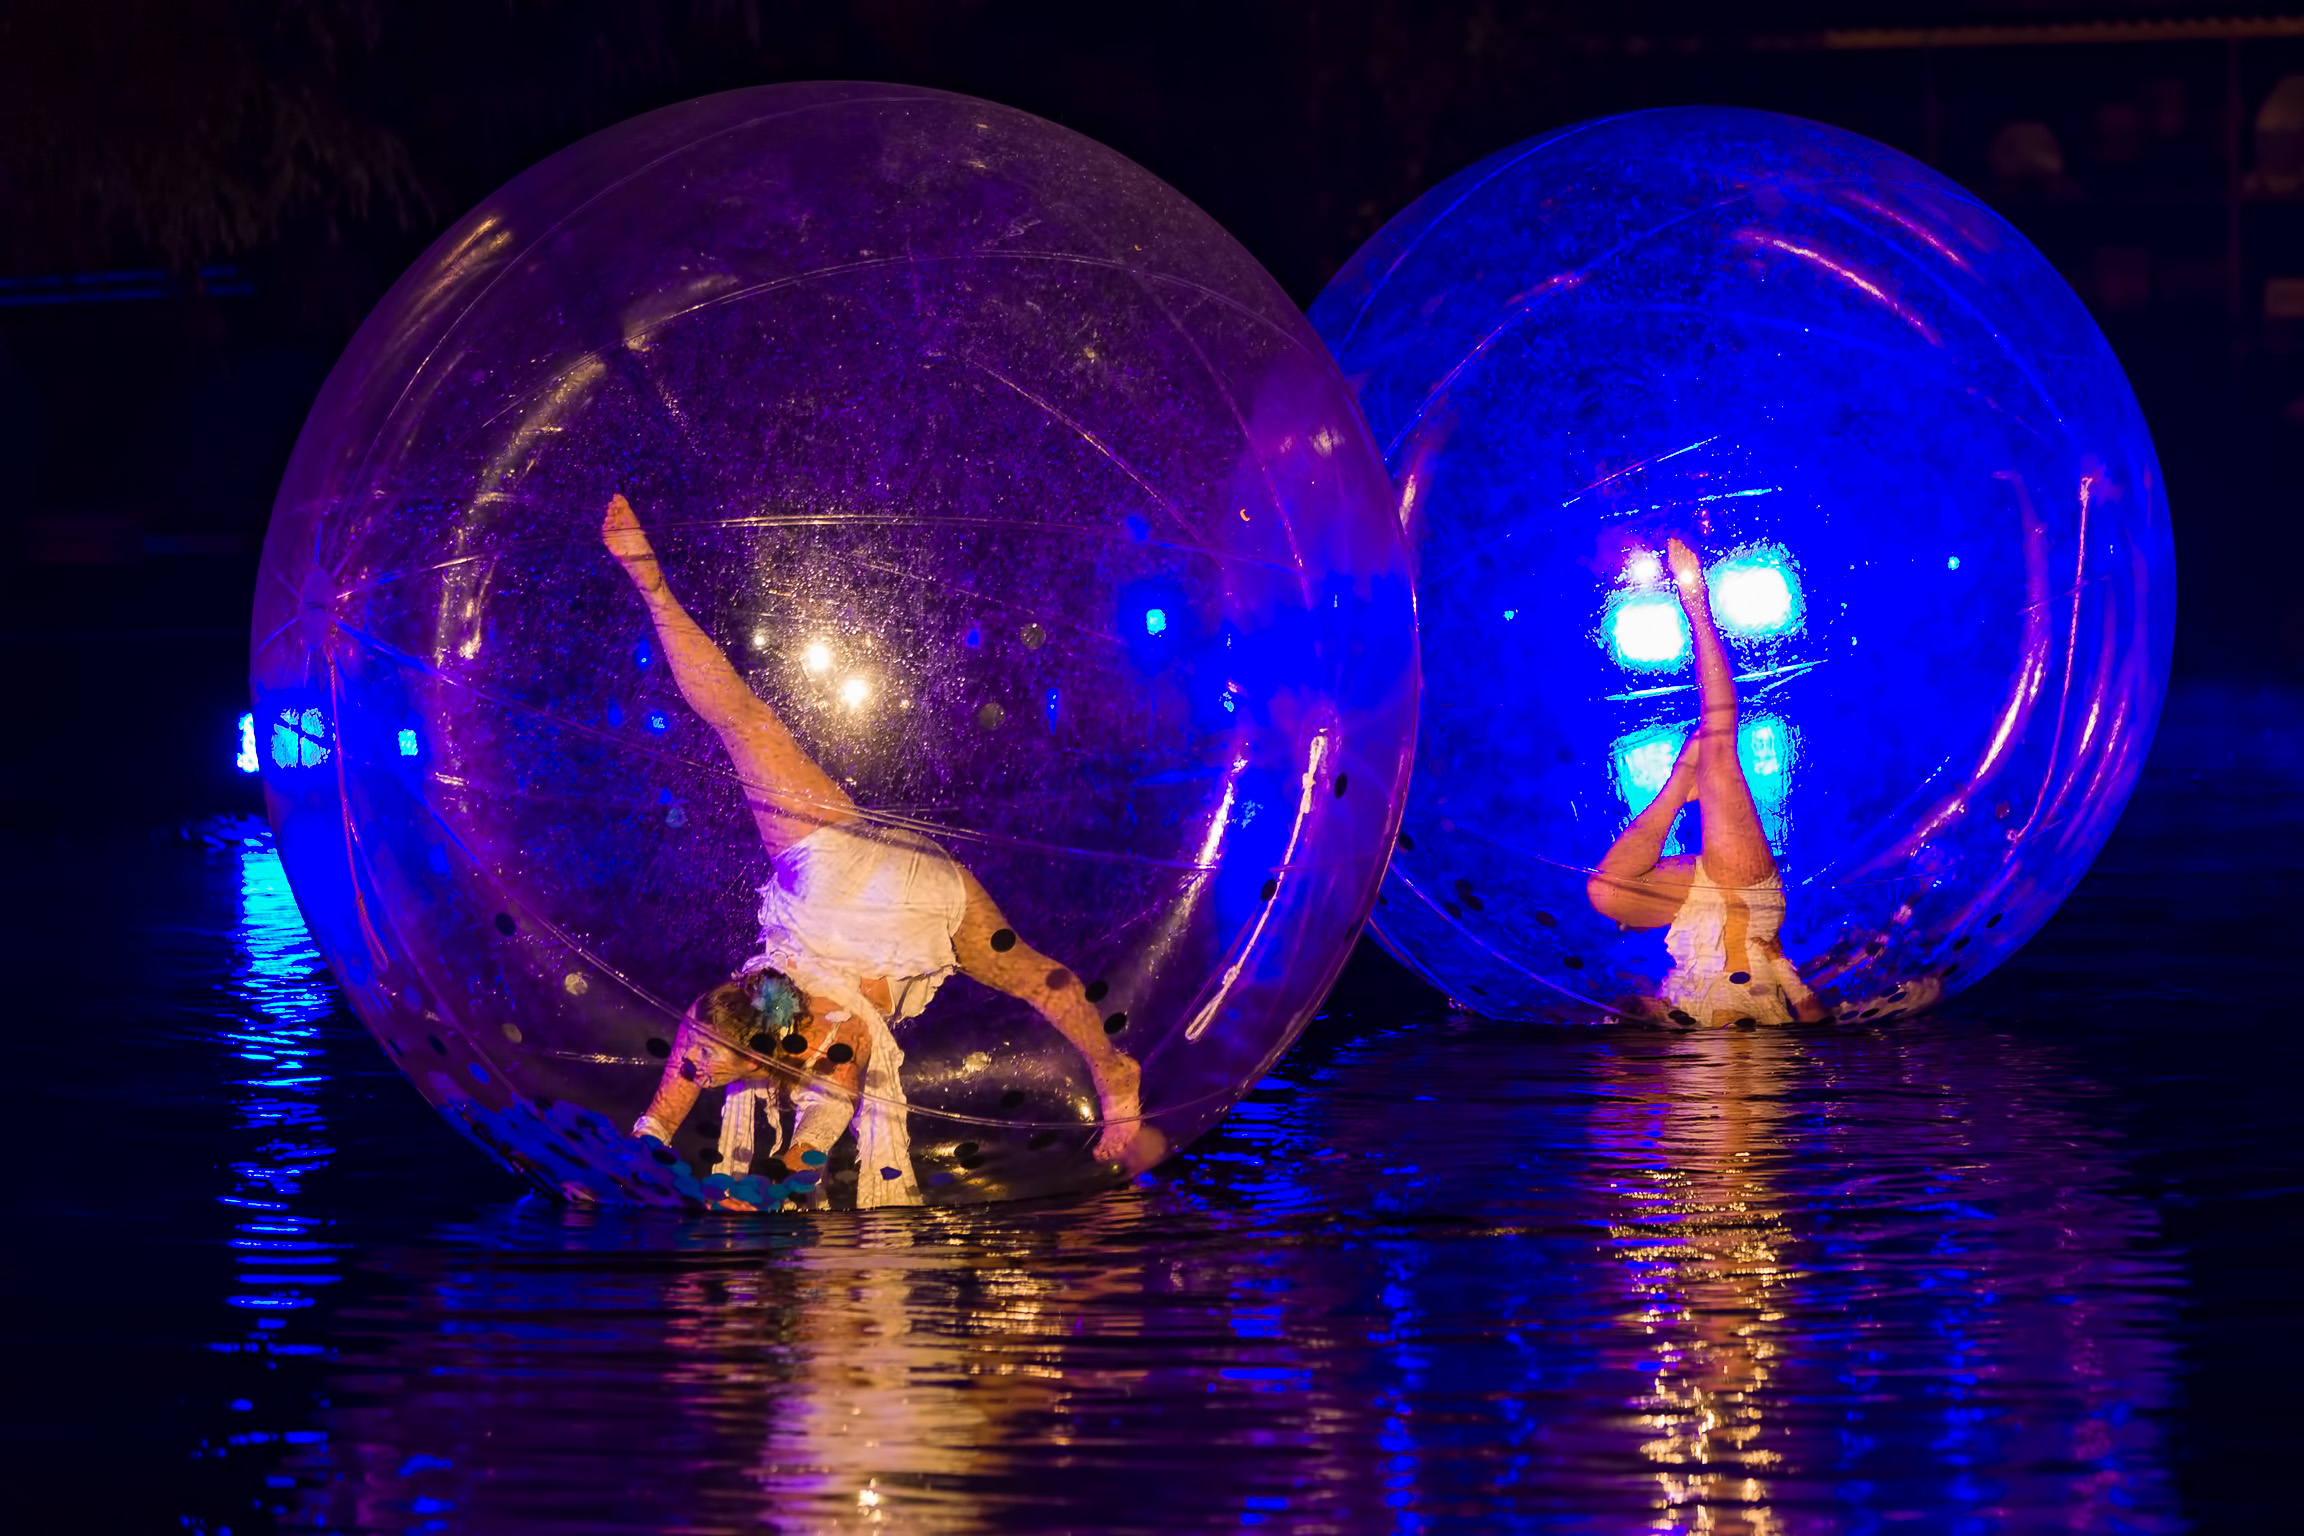 Floating bubble dance show on the water